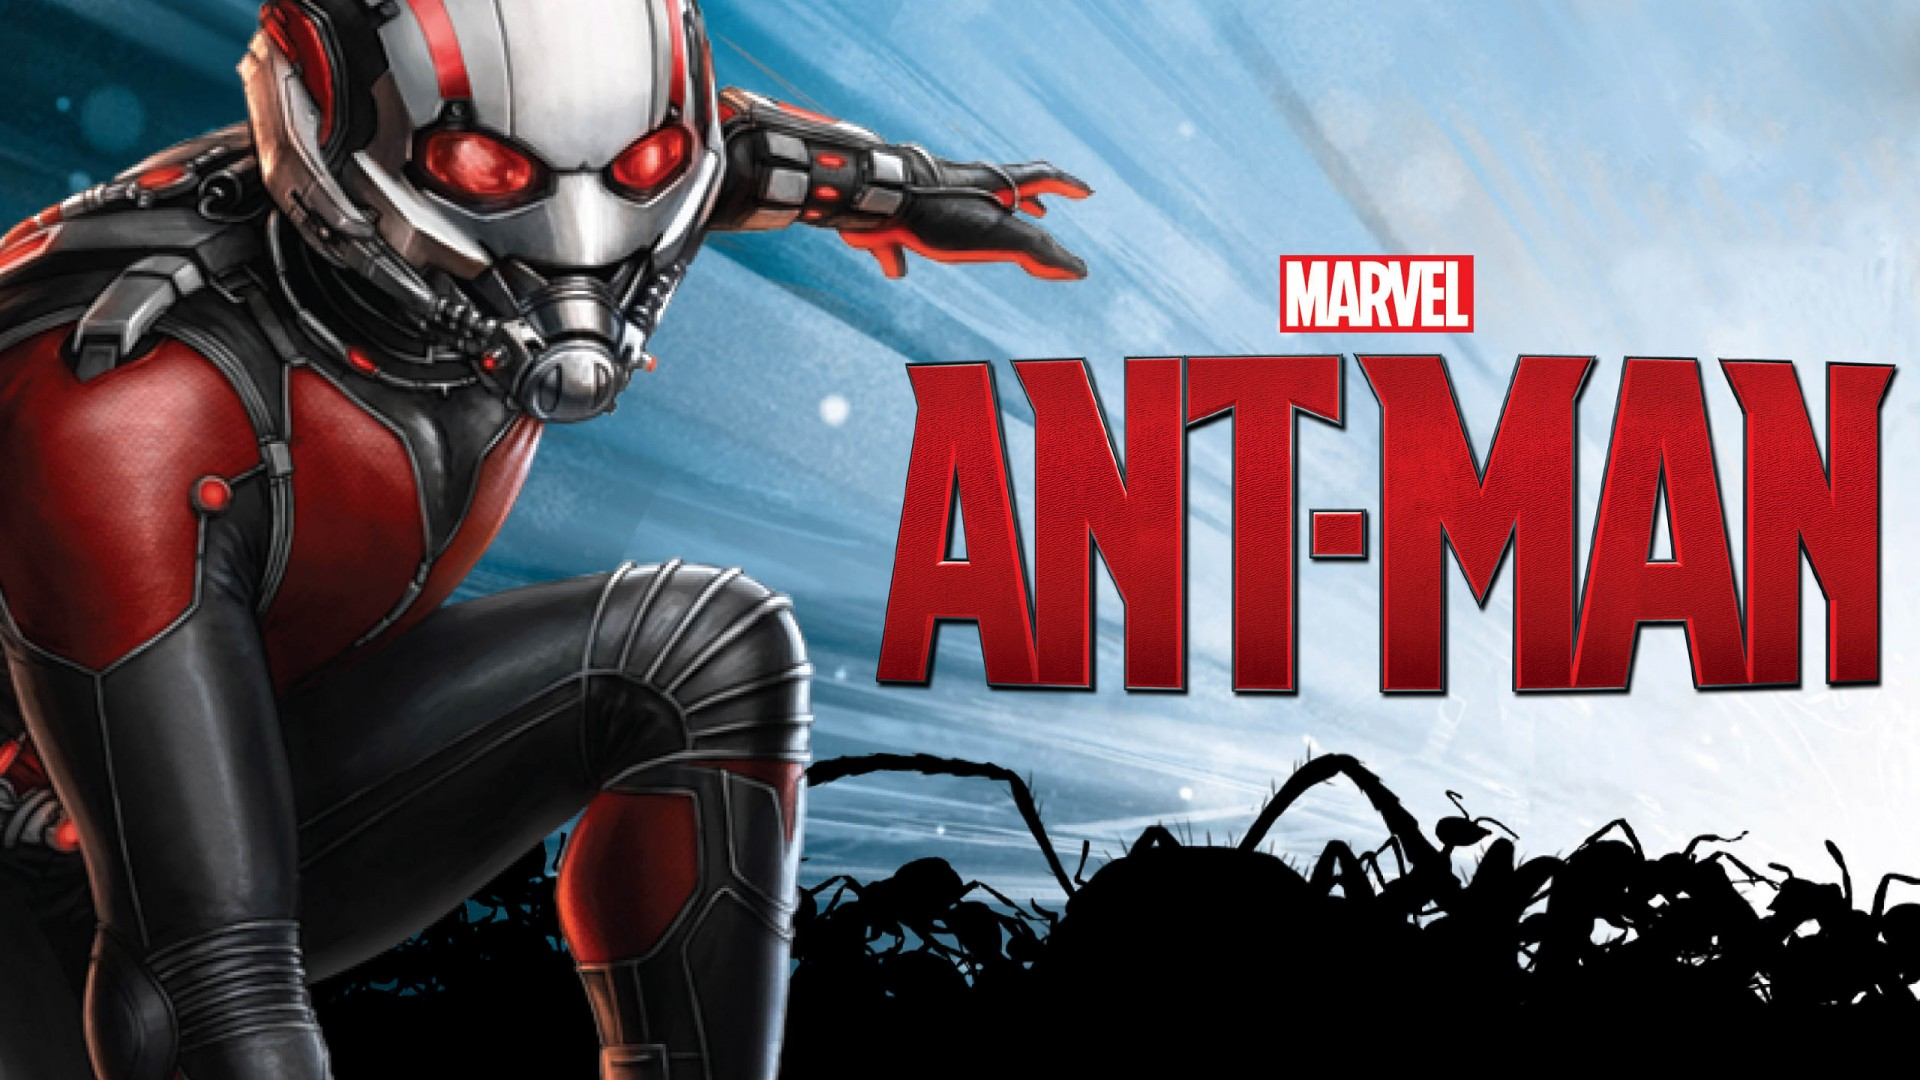 Photo of Ant-man 2: Here's What We Know